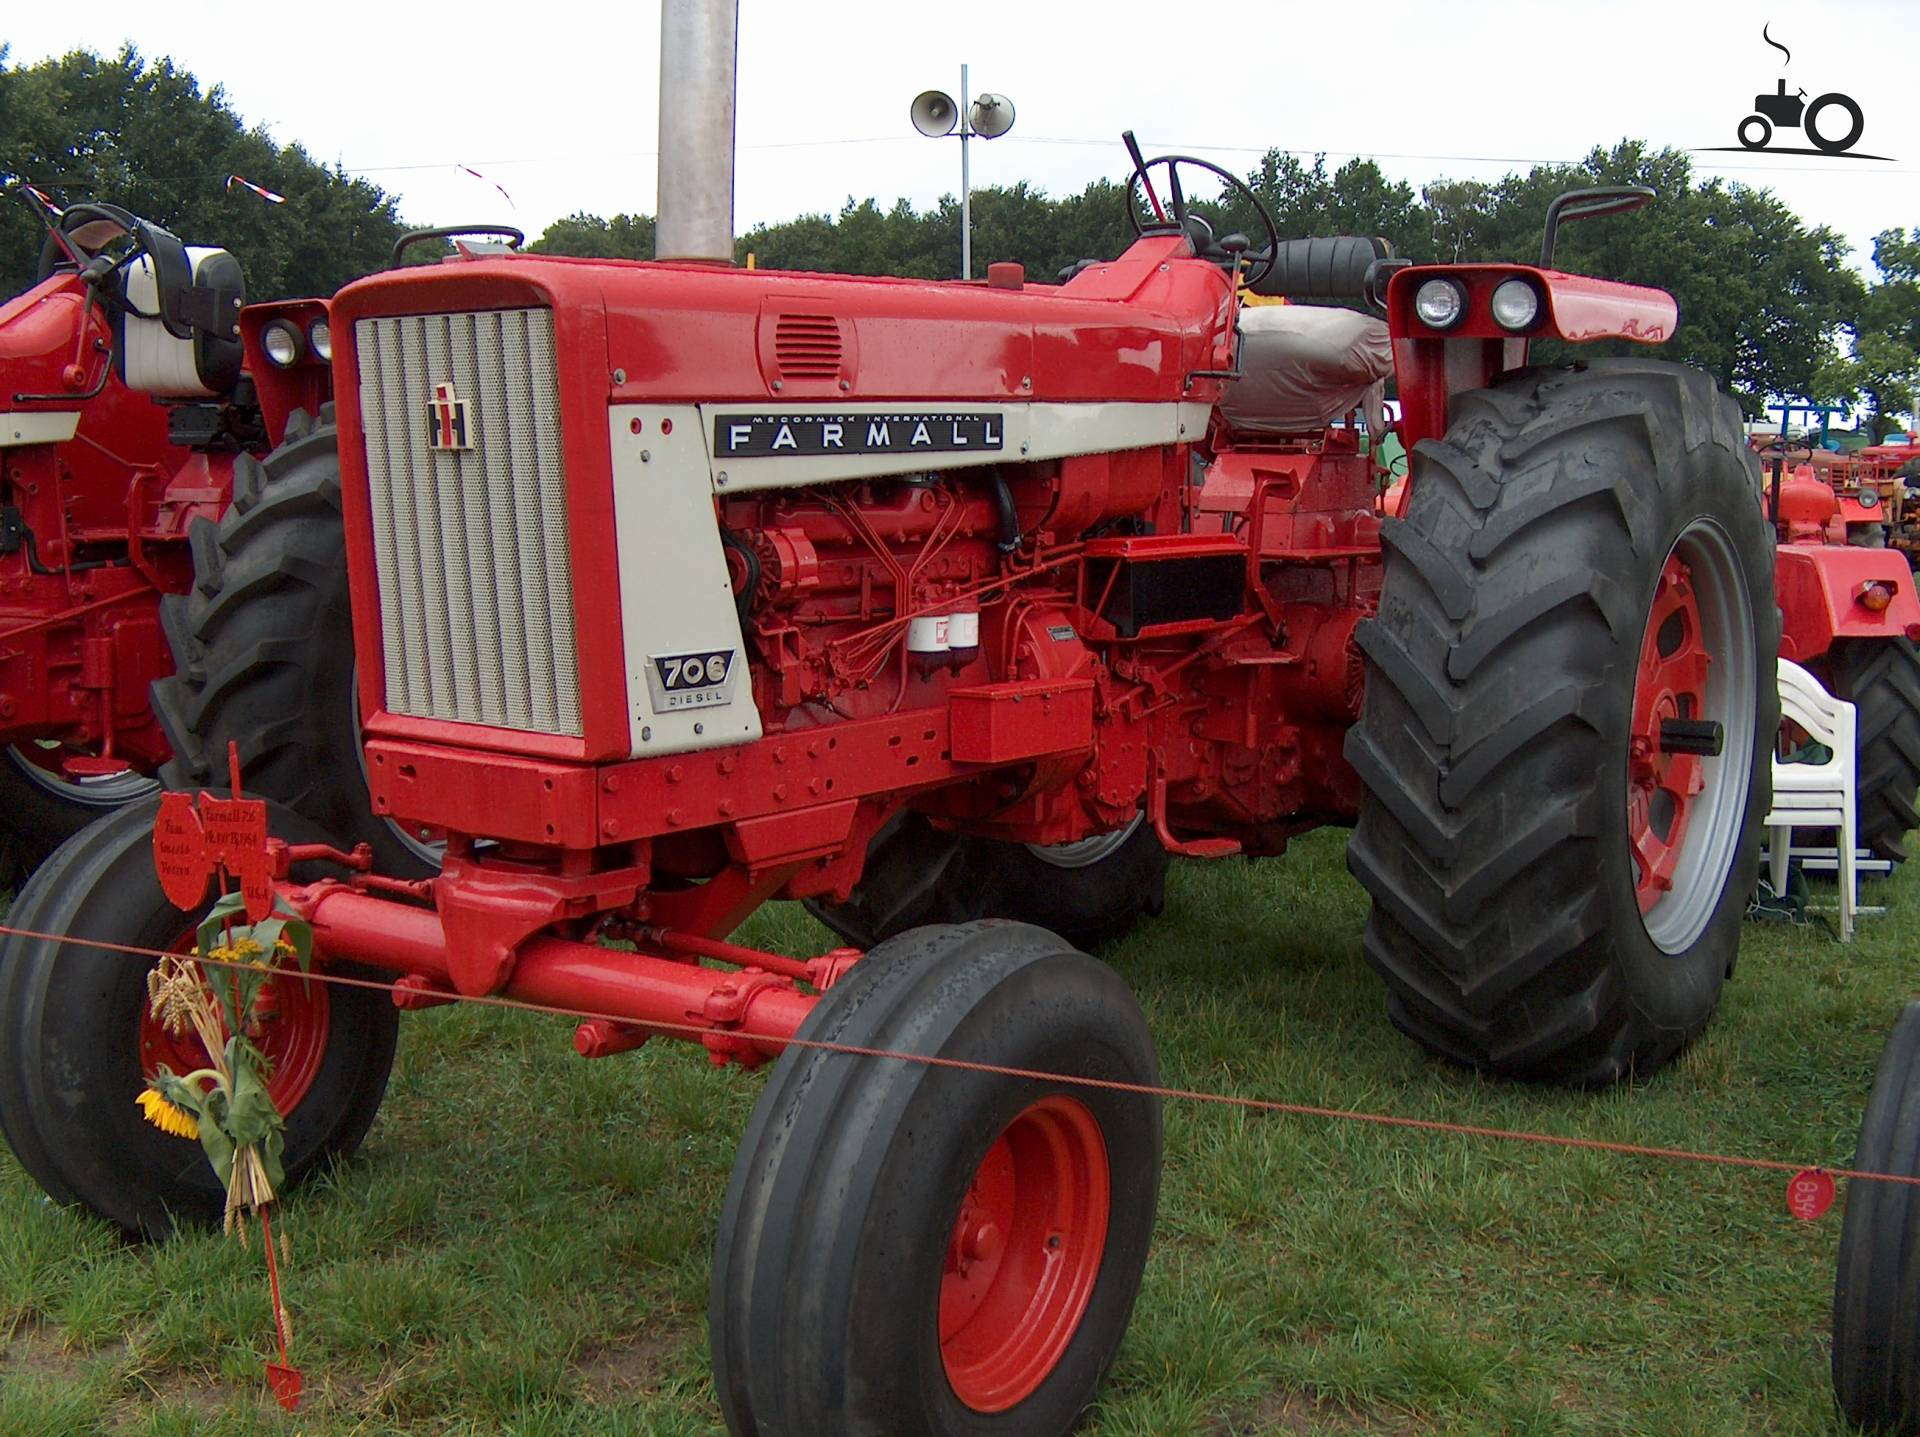 Farmall 706 Diesel Tractor Diagram Block Wiring Explanation Ih 1456 Pictures To Pin On Pinterest Thepinsta